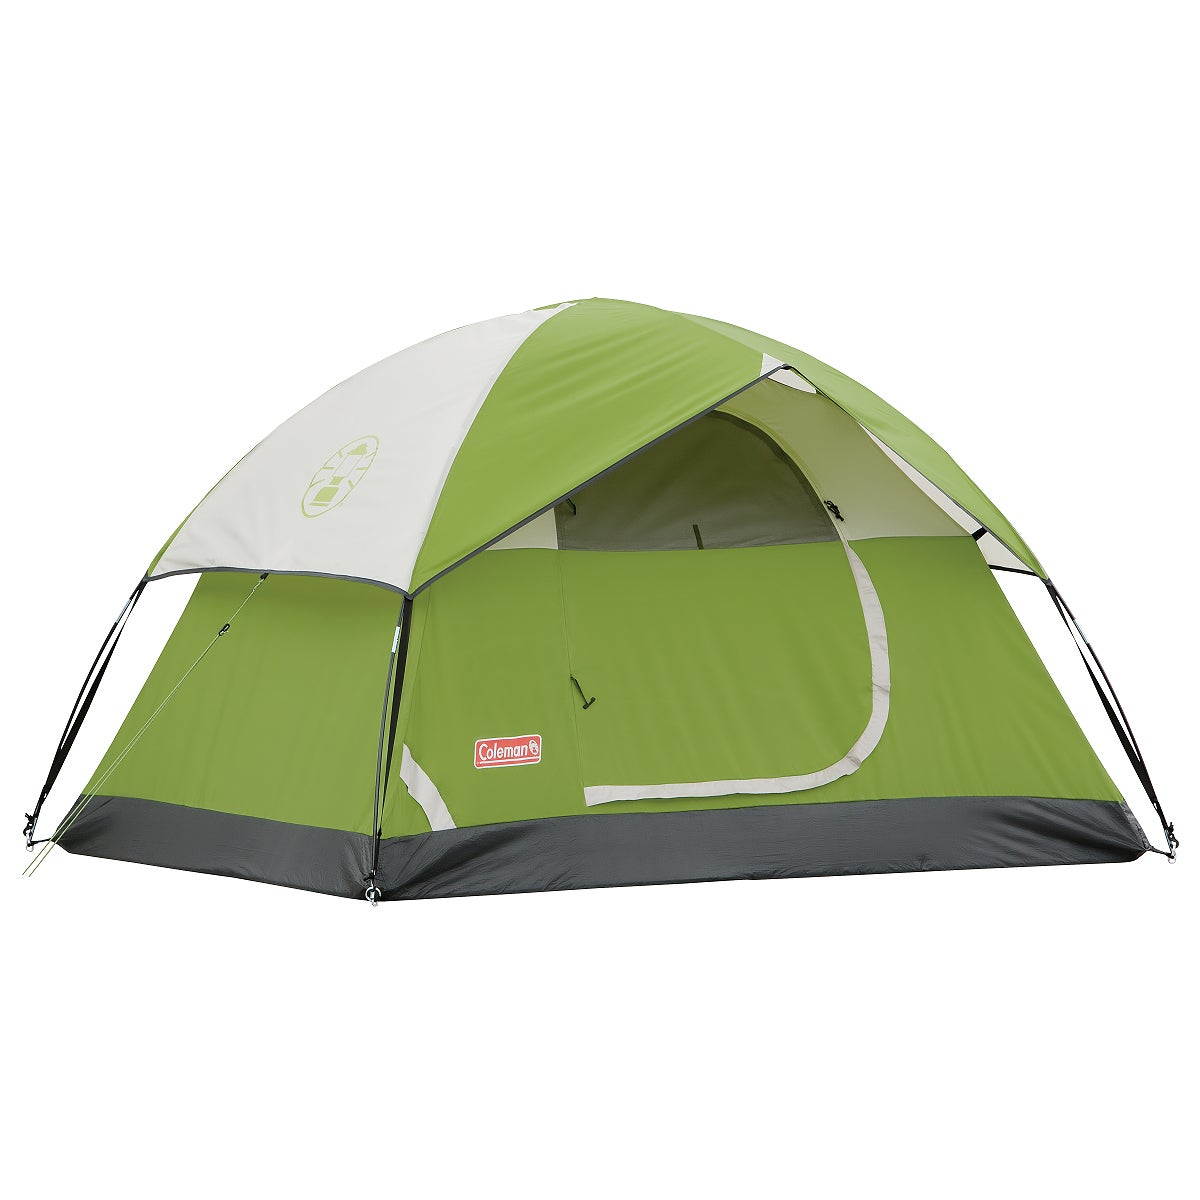 Coleman Sundome Green Single-door Two-person Tent (48' x 5' x 7')